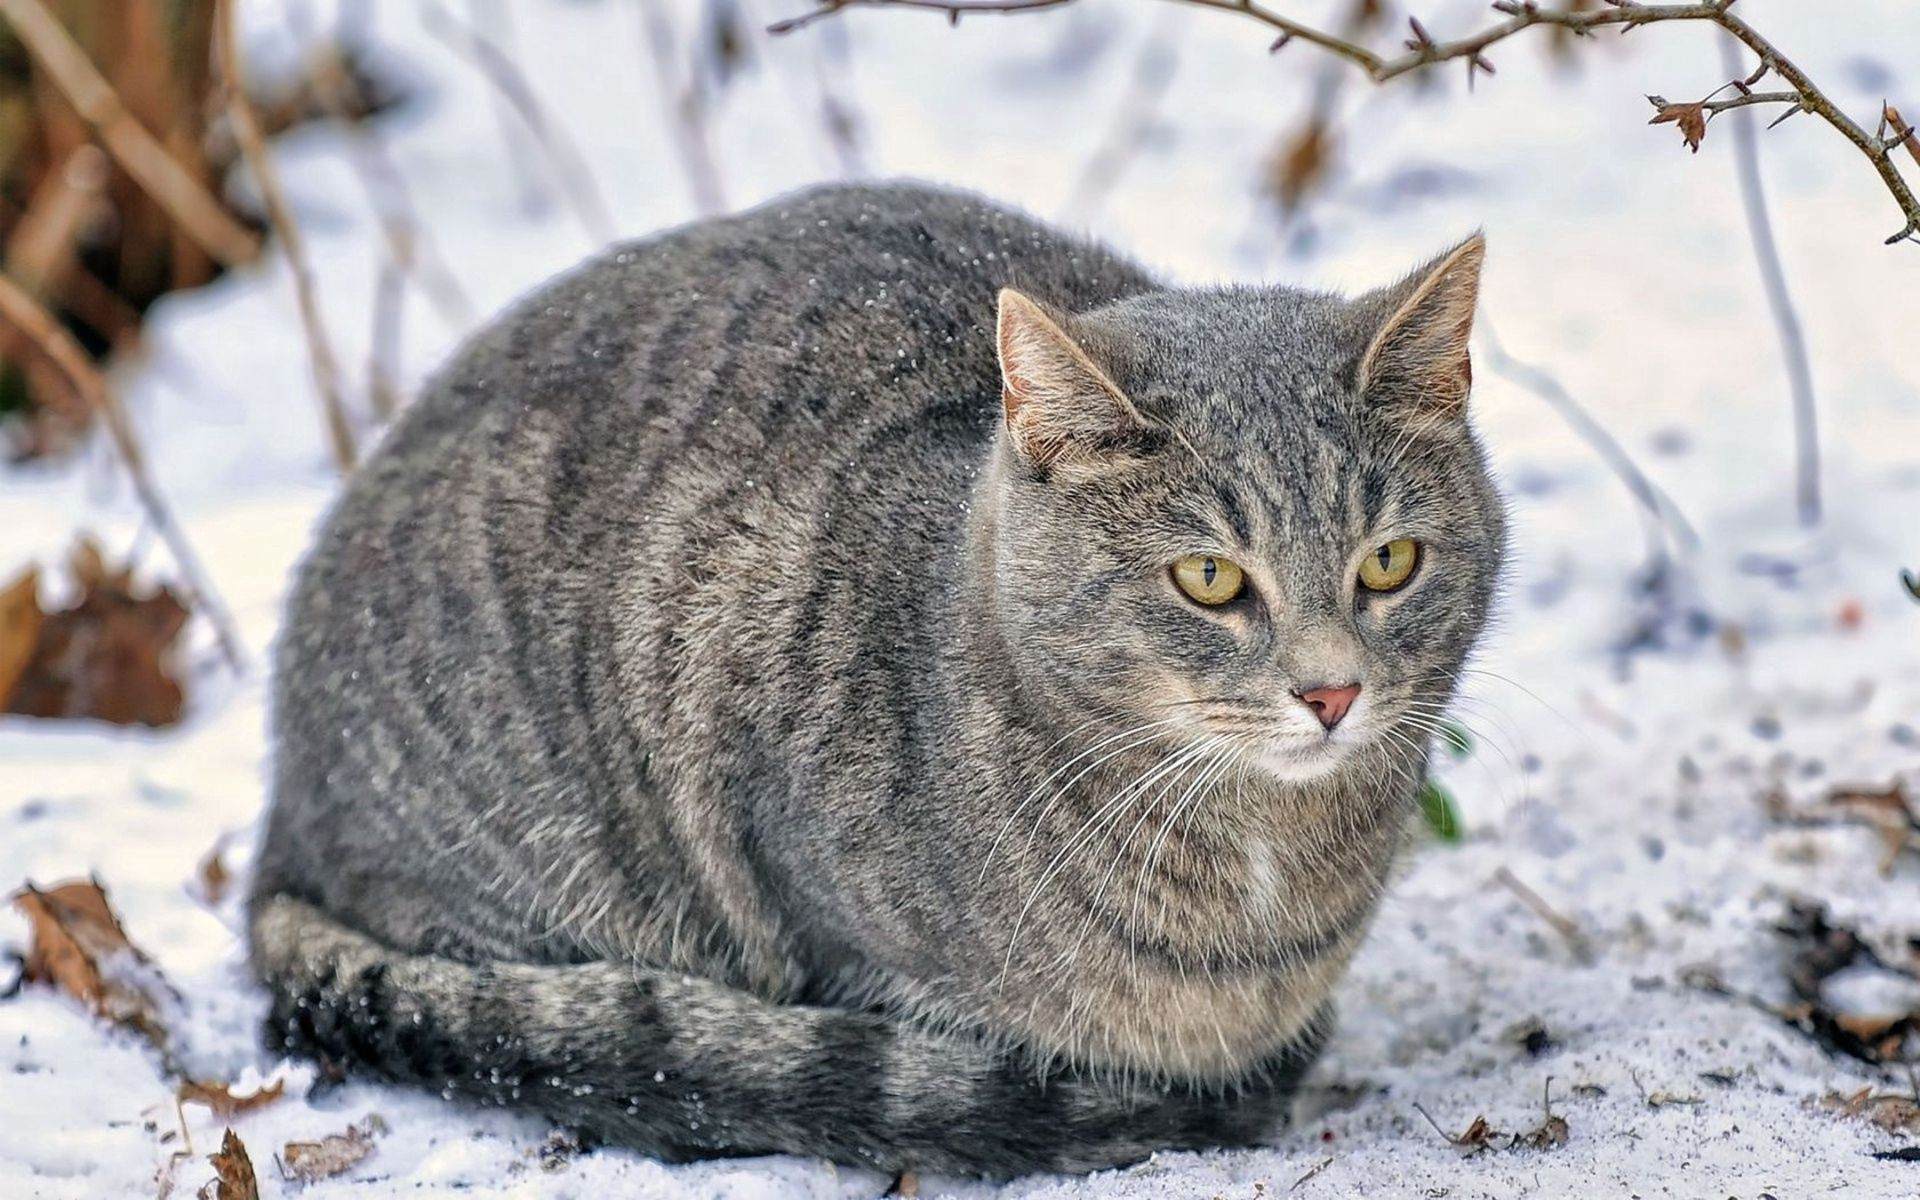 118826 download wallpaper Animals, Cat, Snow, Fluffy, Fat, Thick screensavers and pictures for free